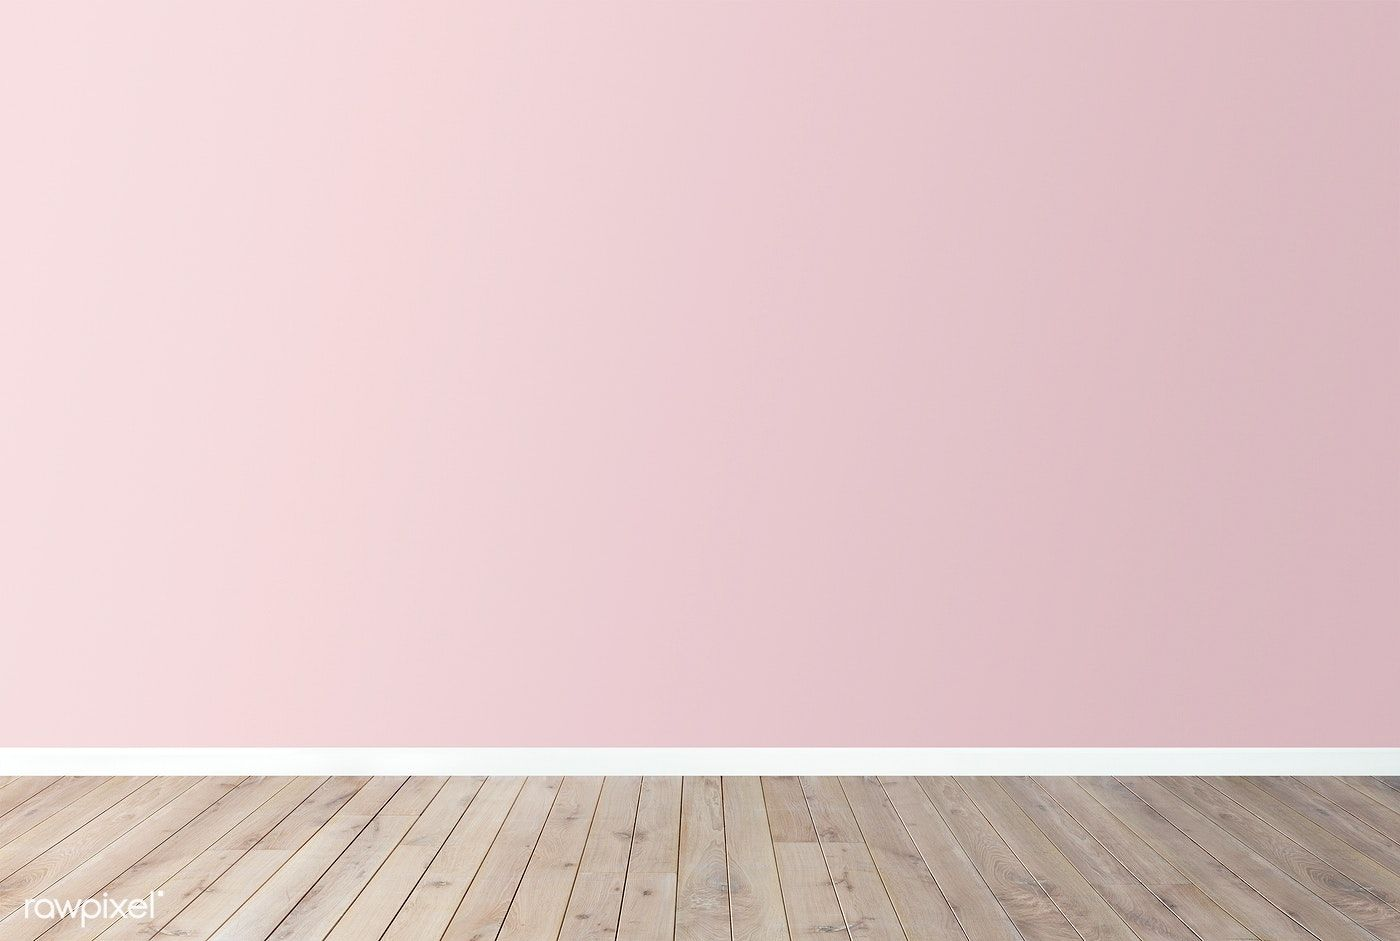 Download Premium Psd Of Pink Blank Concrete Wall Mockup 586132 Concrete Wall Anime Backgrounds Wallpapers Powerpoint Background Free Living room background png